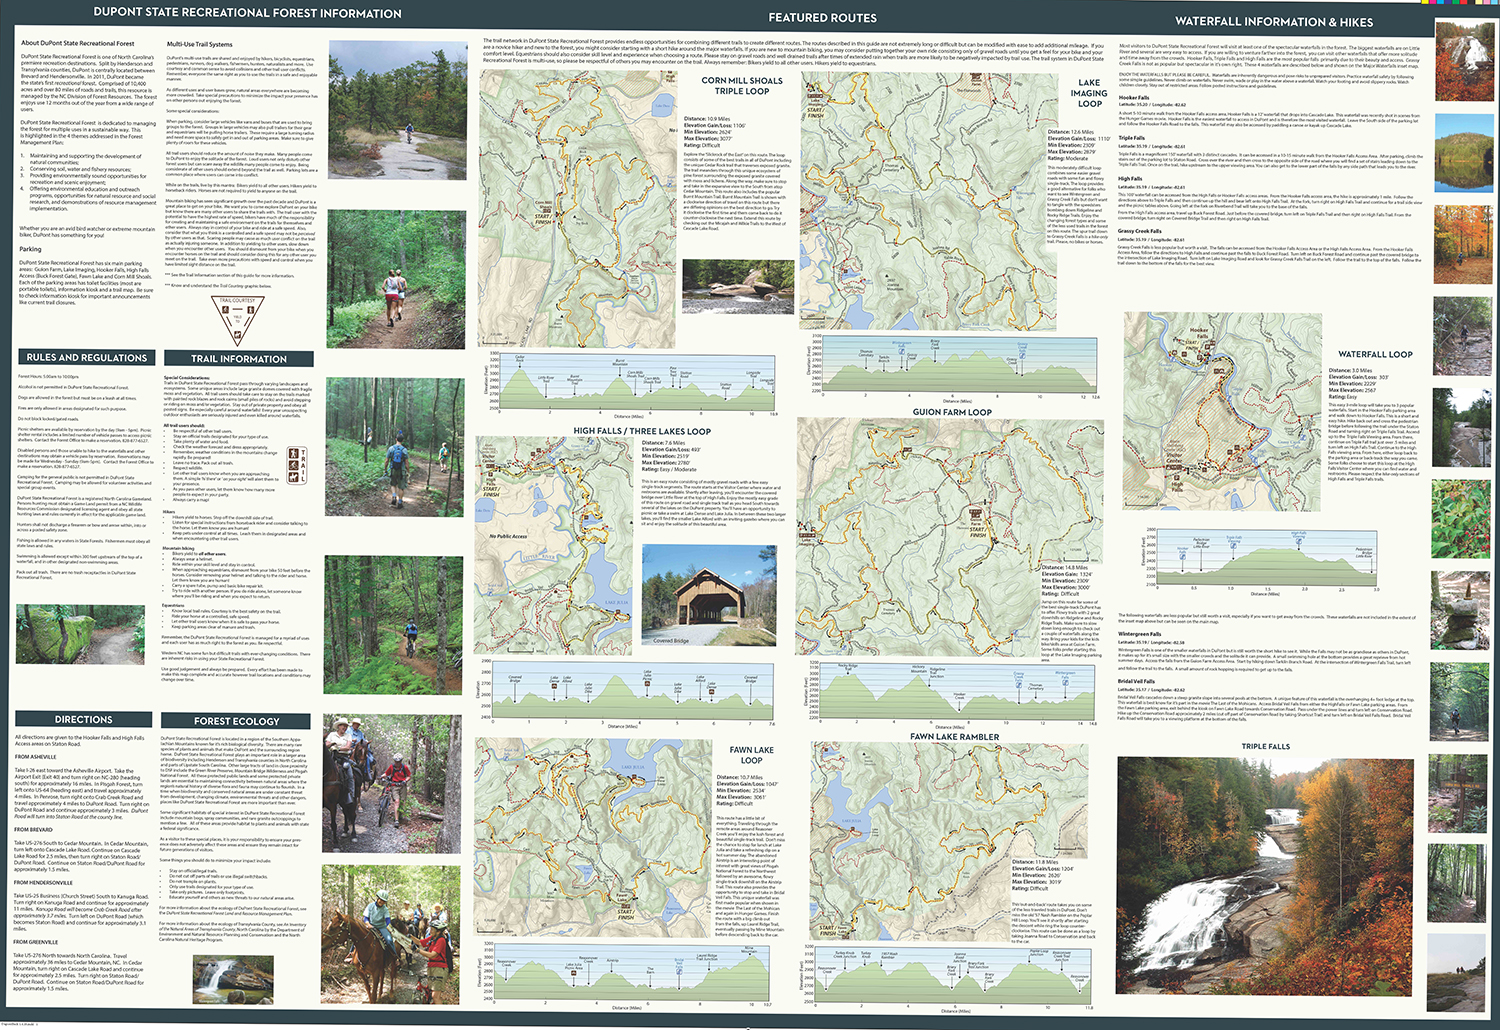 DuPont State Recreational Forest — Pisgah Map Co. on facebook map, el malpais national monument map, blue ridge mountains map, lake james state park map, art loeb trail map, great smoky mountains national park map, blue ridge parkway map, la chua trail map, panthertown valley map, french broad river map, brevard college map, dupont trails nc, dupont national forest waterfalls map, linville gorge map, sliding rock map, daniel boone scout trail map, panem map, new river state park map, conecuh national forest trail map, bighorn national forest trail map,